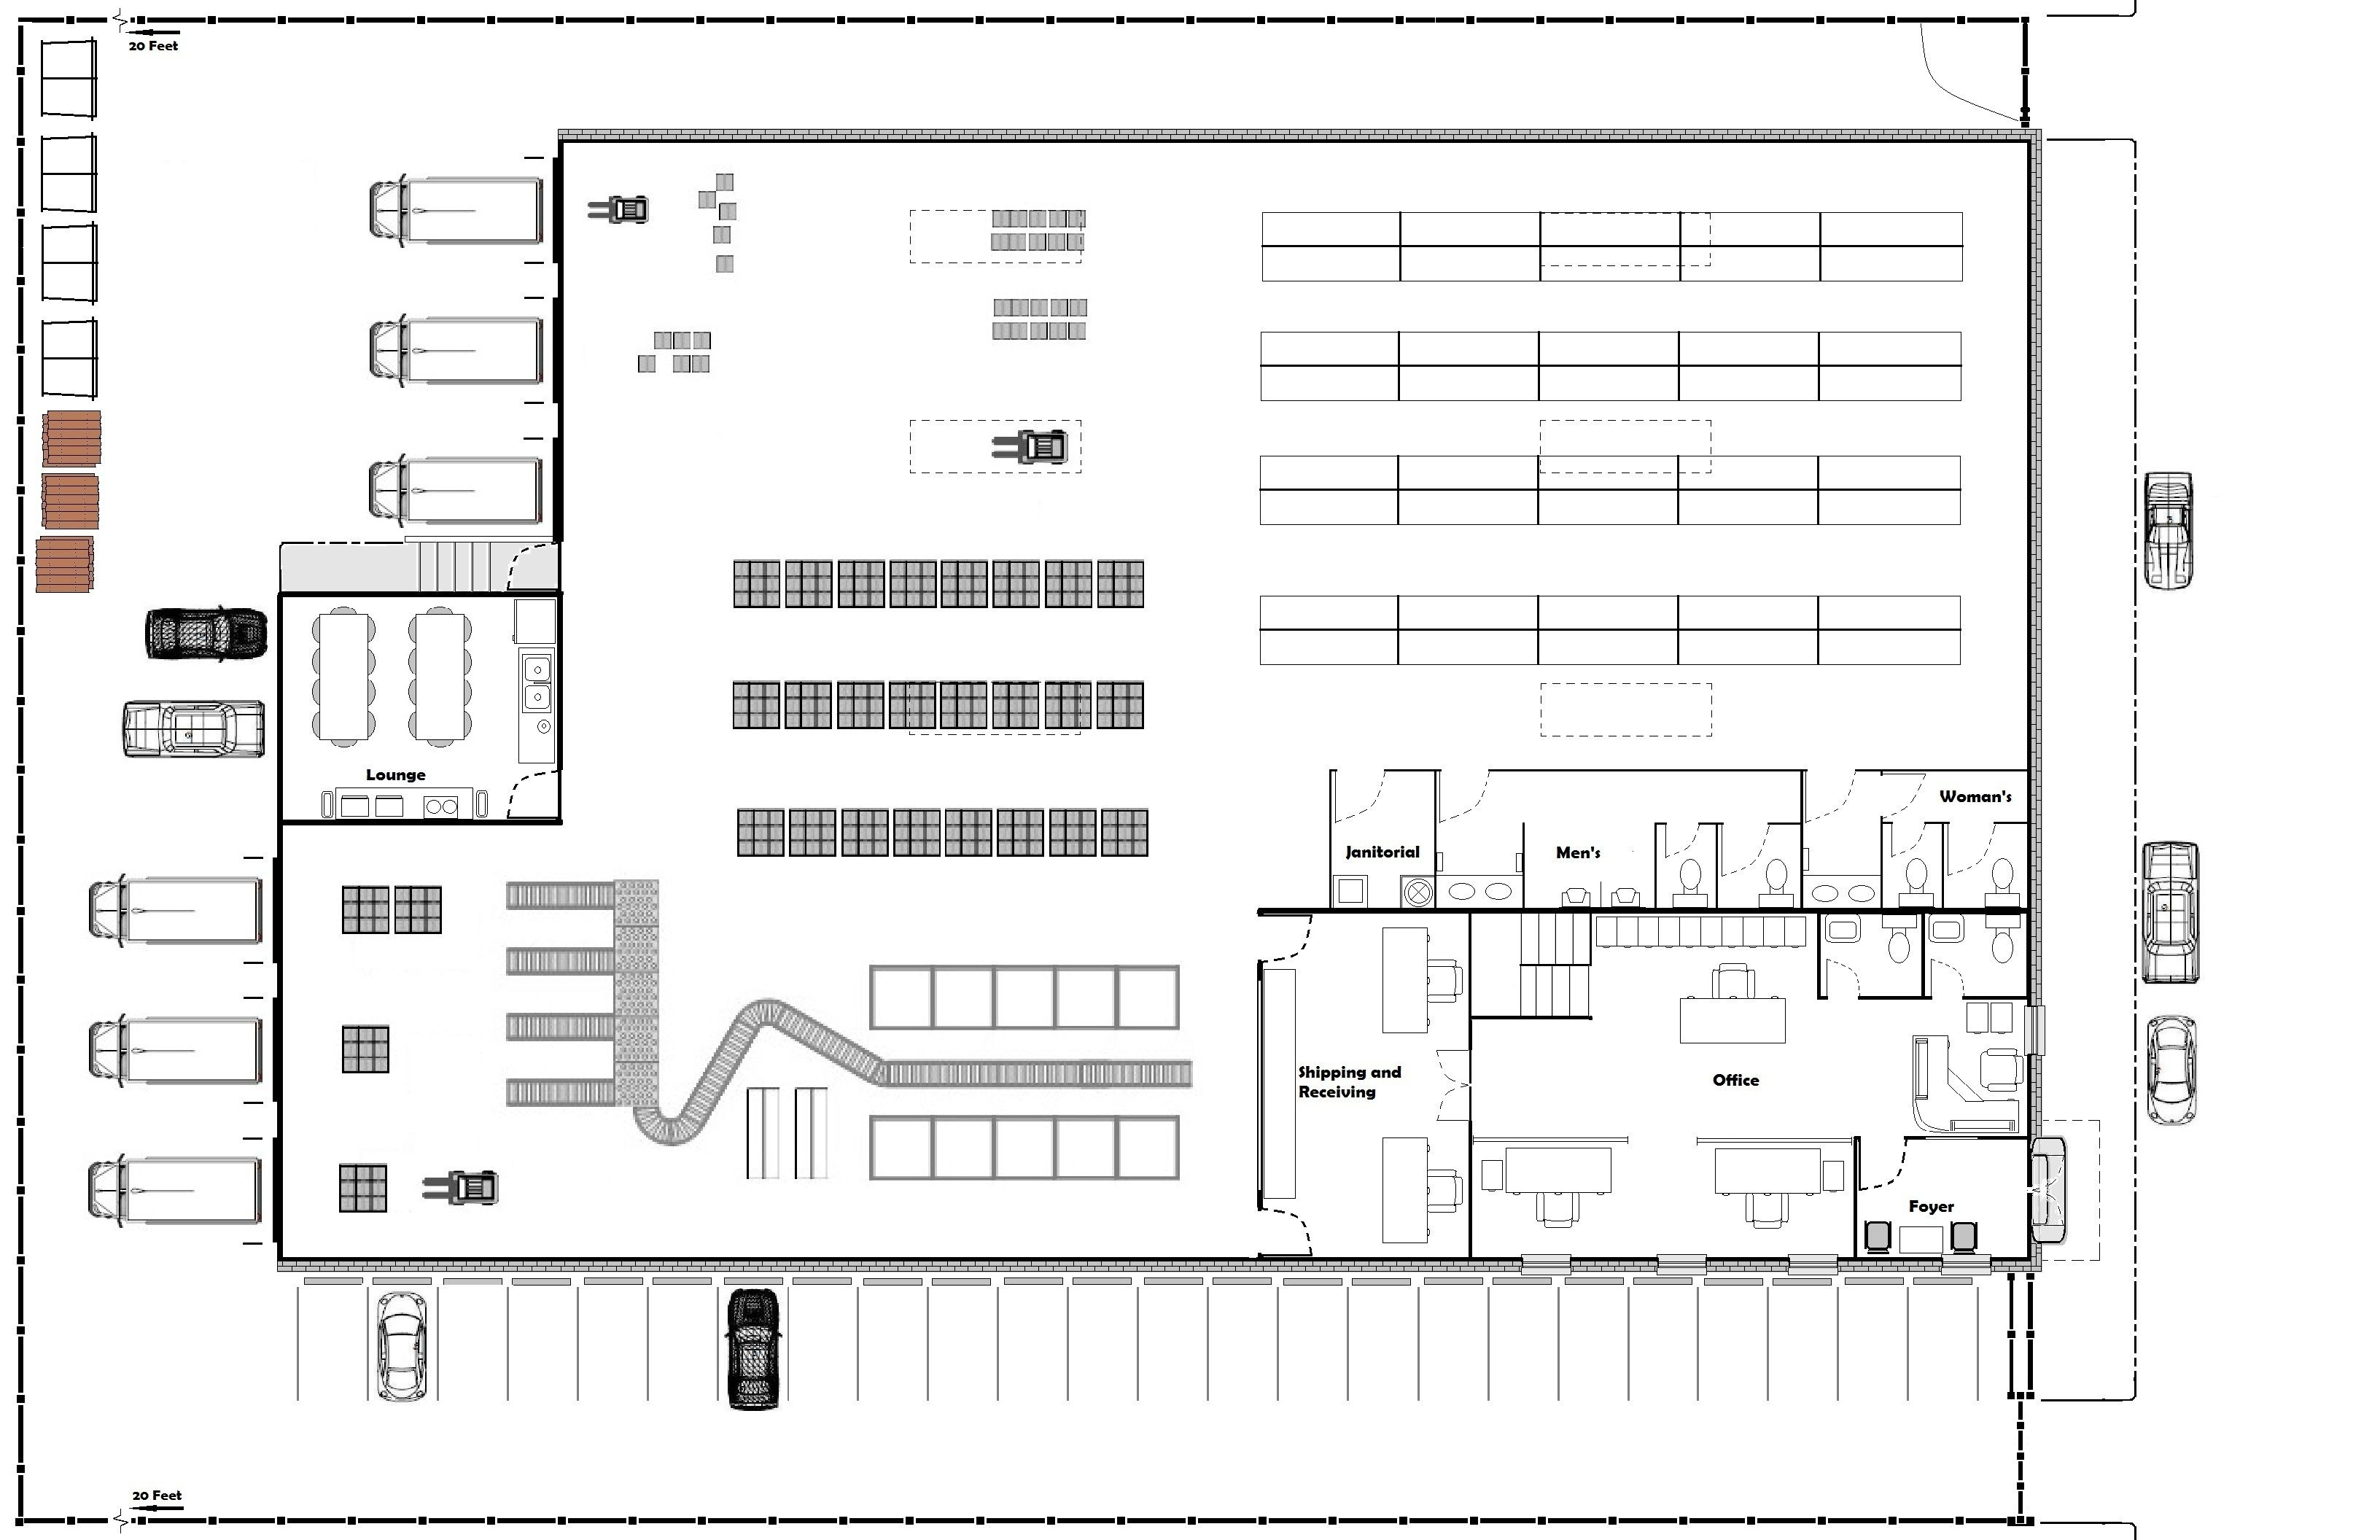 Warehouse floor plan gurus floor for Warehouse floor plan design software free